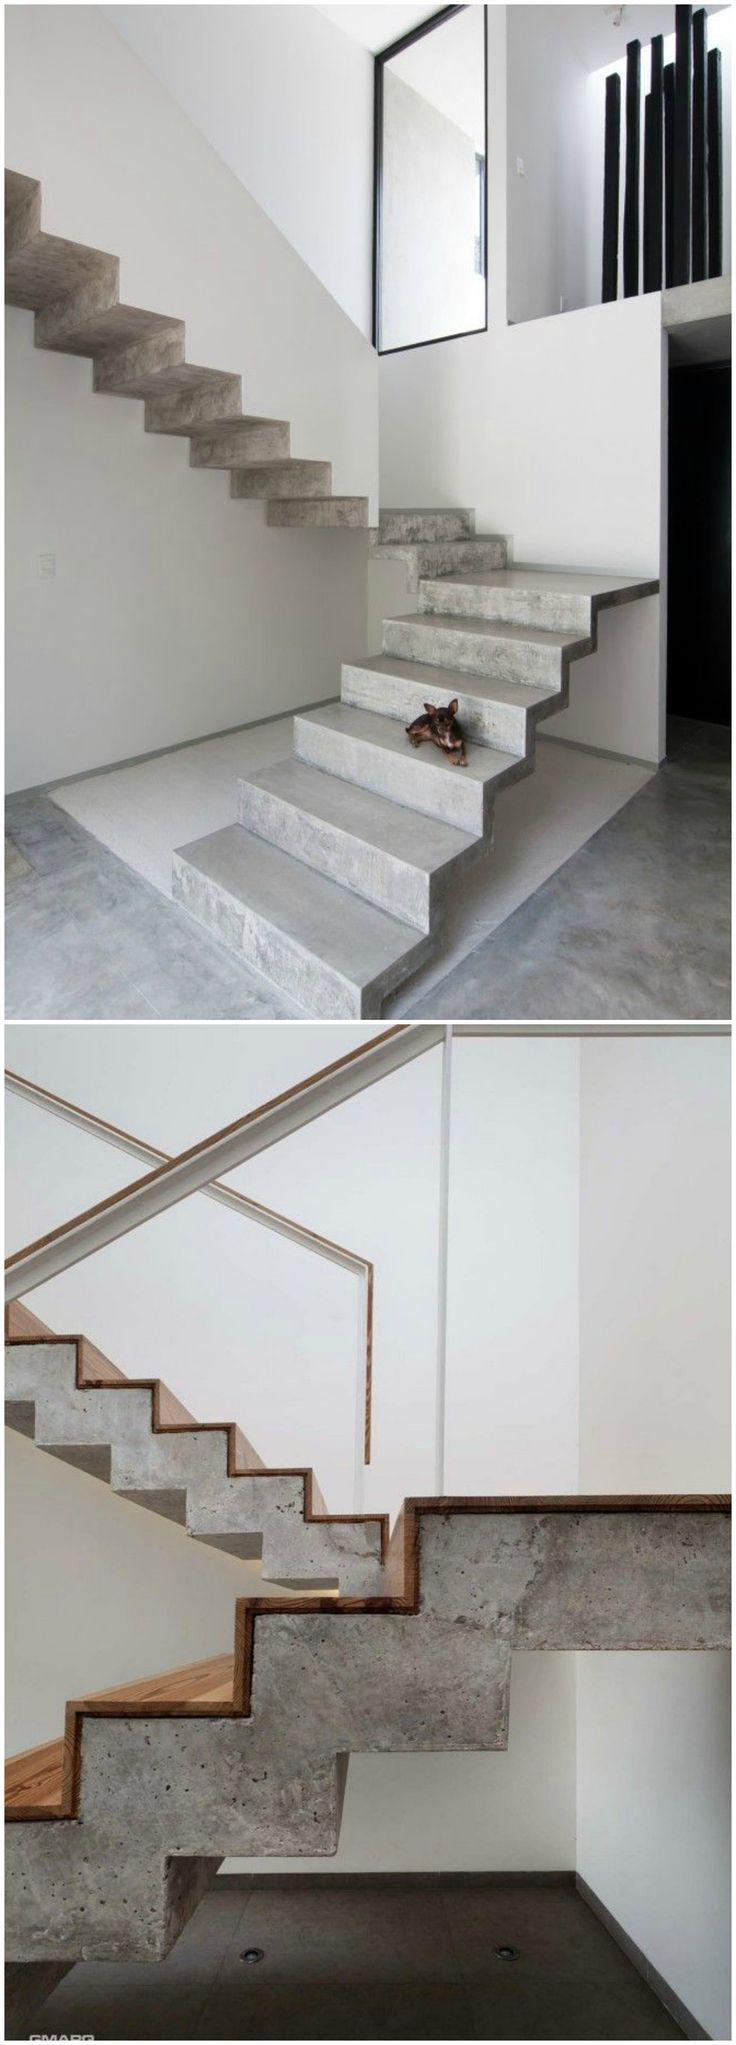 17 mejores ideas sobre dise o de escalera en pinterest for Escaleras concreto para interiores